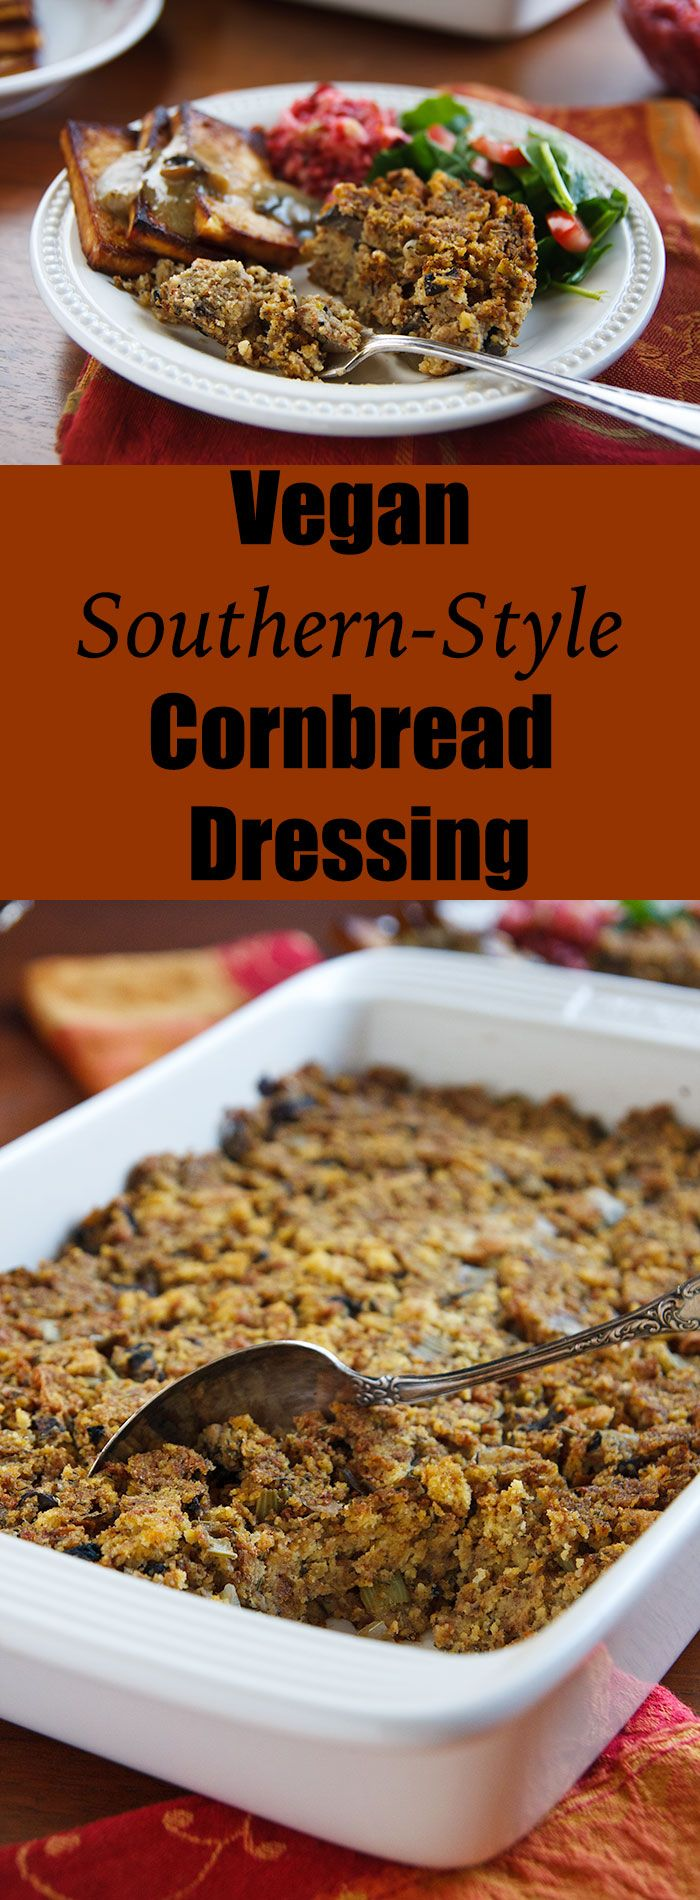 This dressing is just like your Southern mother used to make, except vegan and low-fat. Perfect for Thanksgiving!